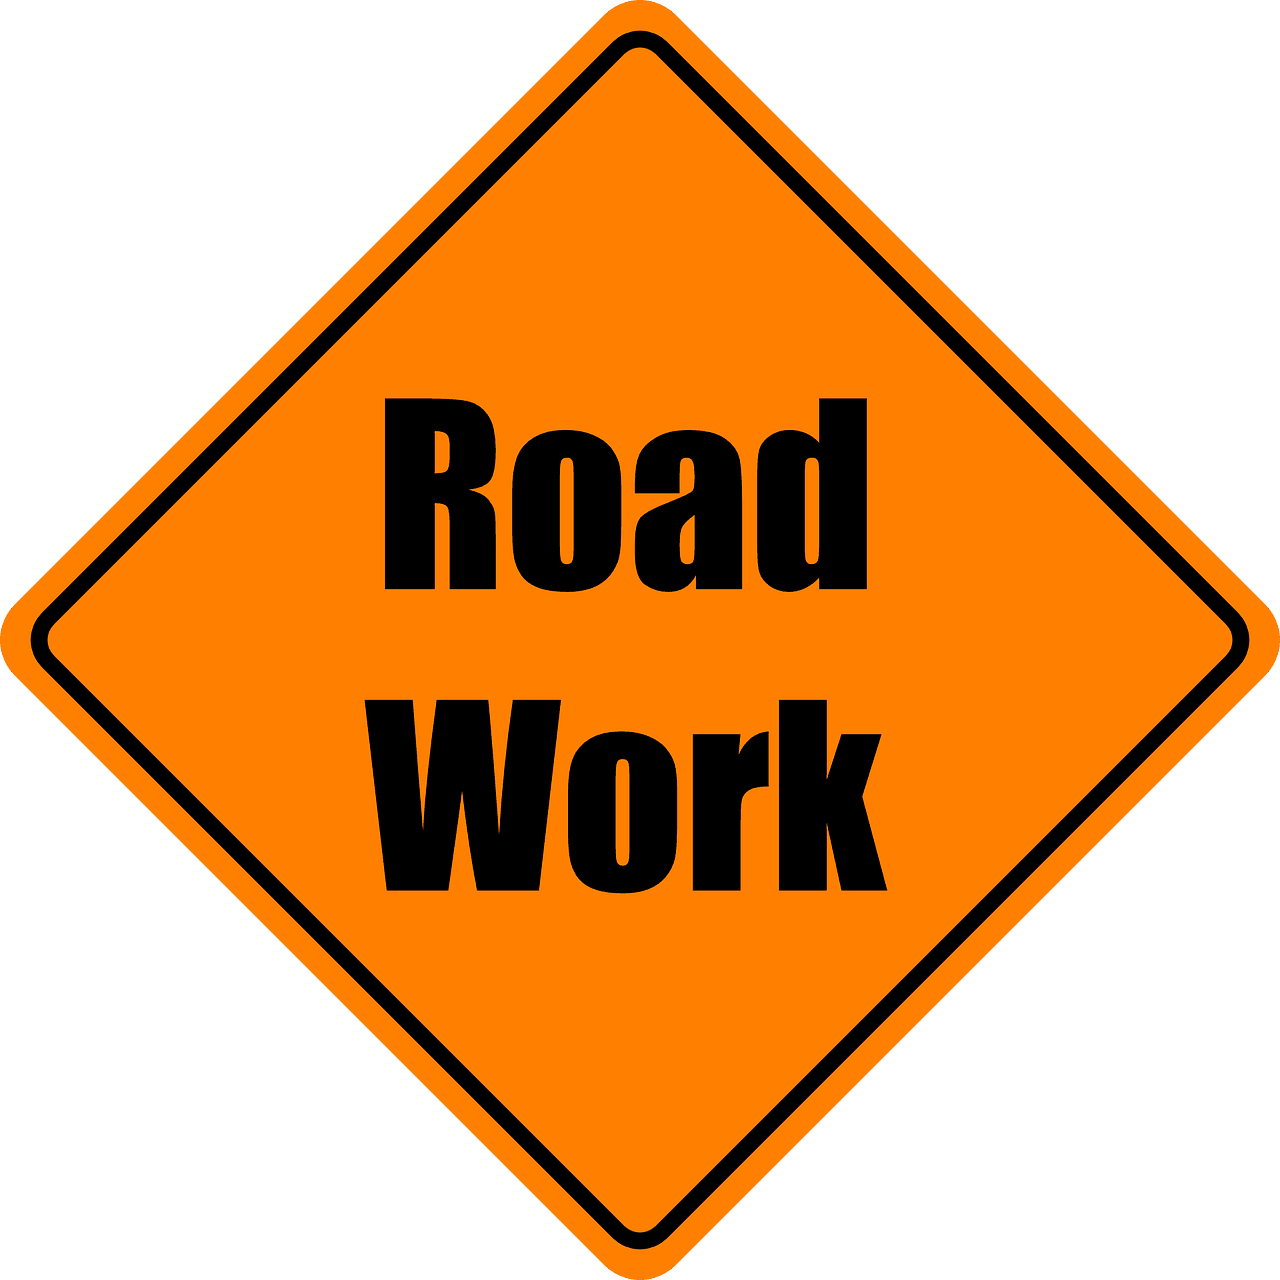 Orange diamond shaped road work sign